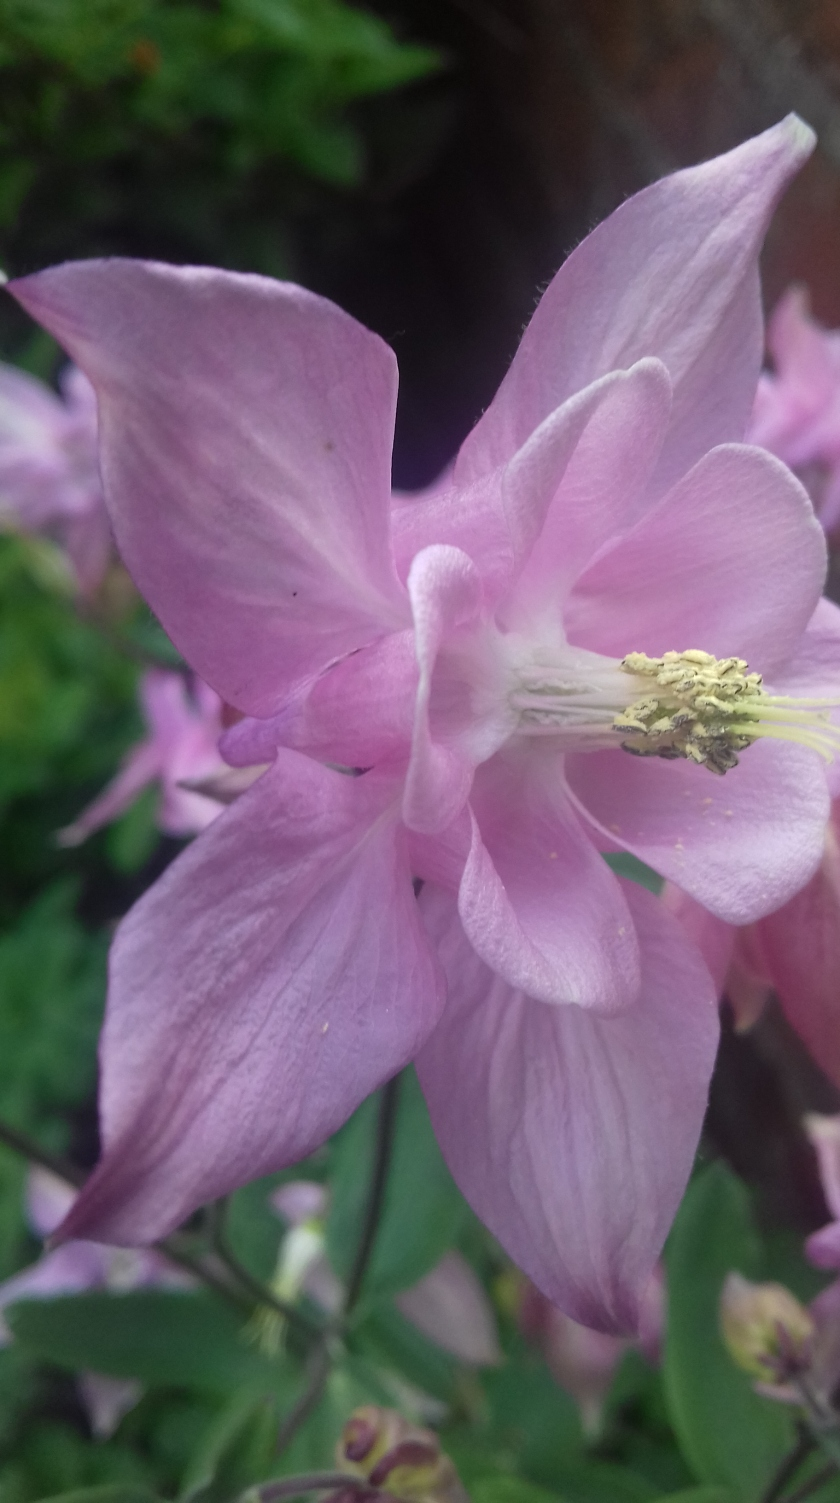 Pink flower of grandma's bonnet #FOTD